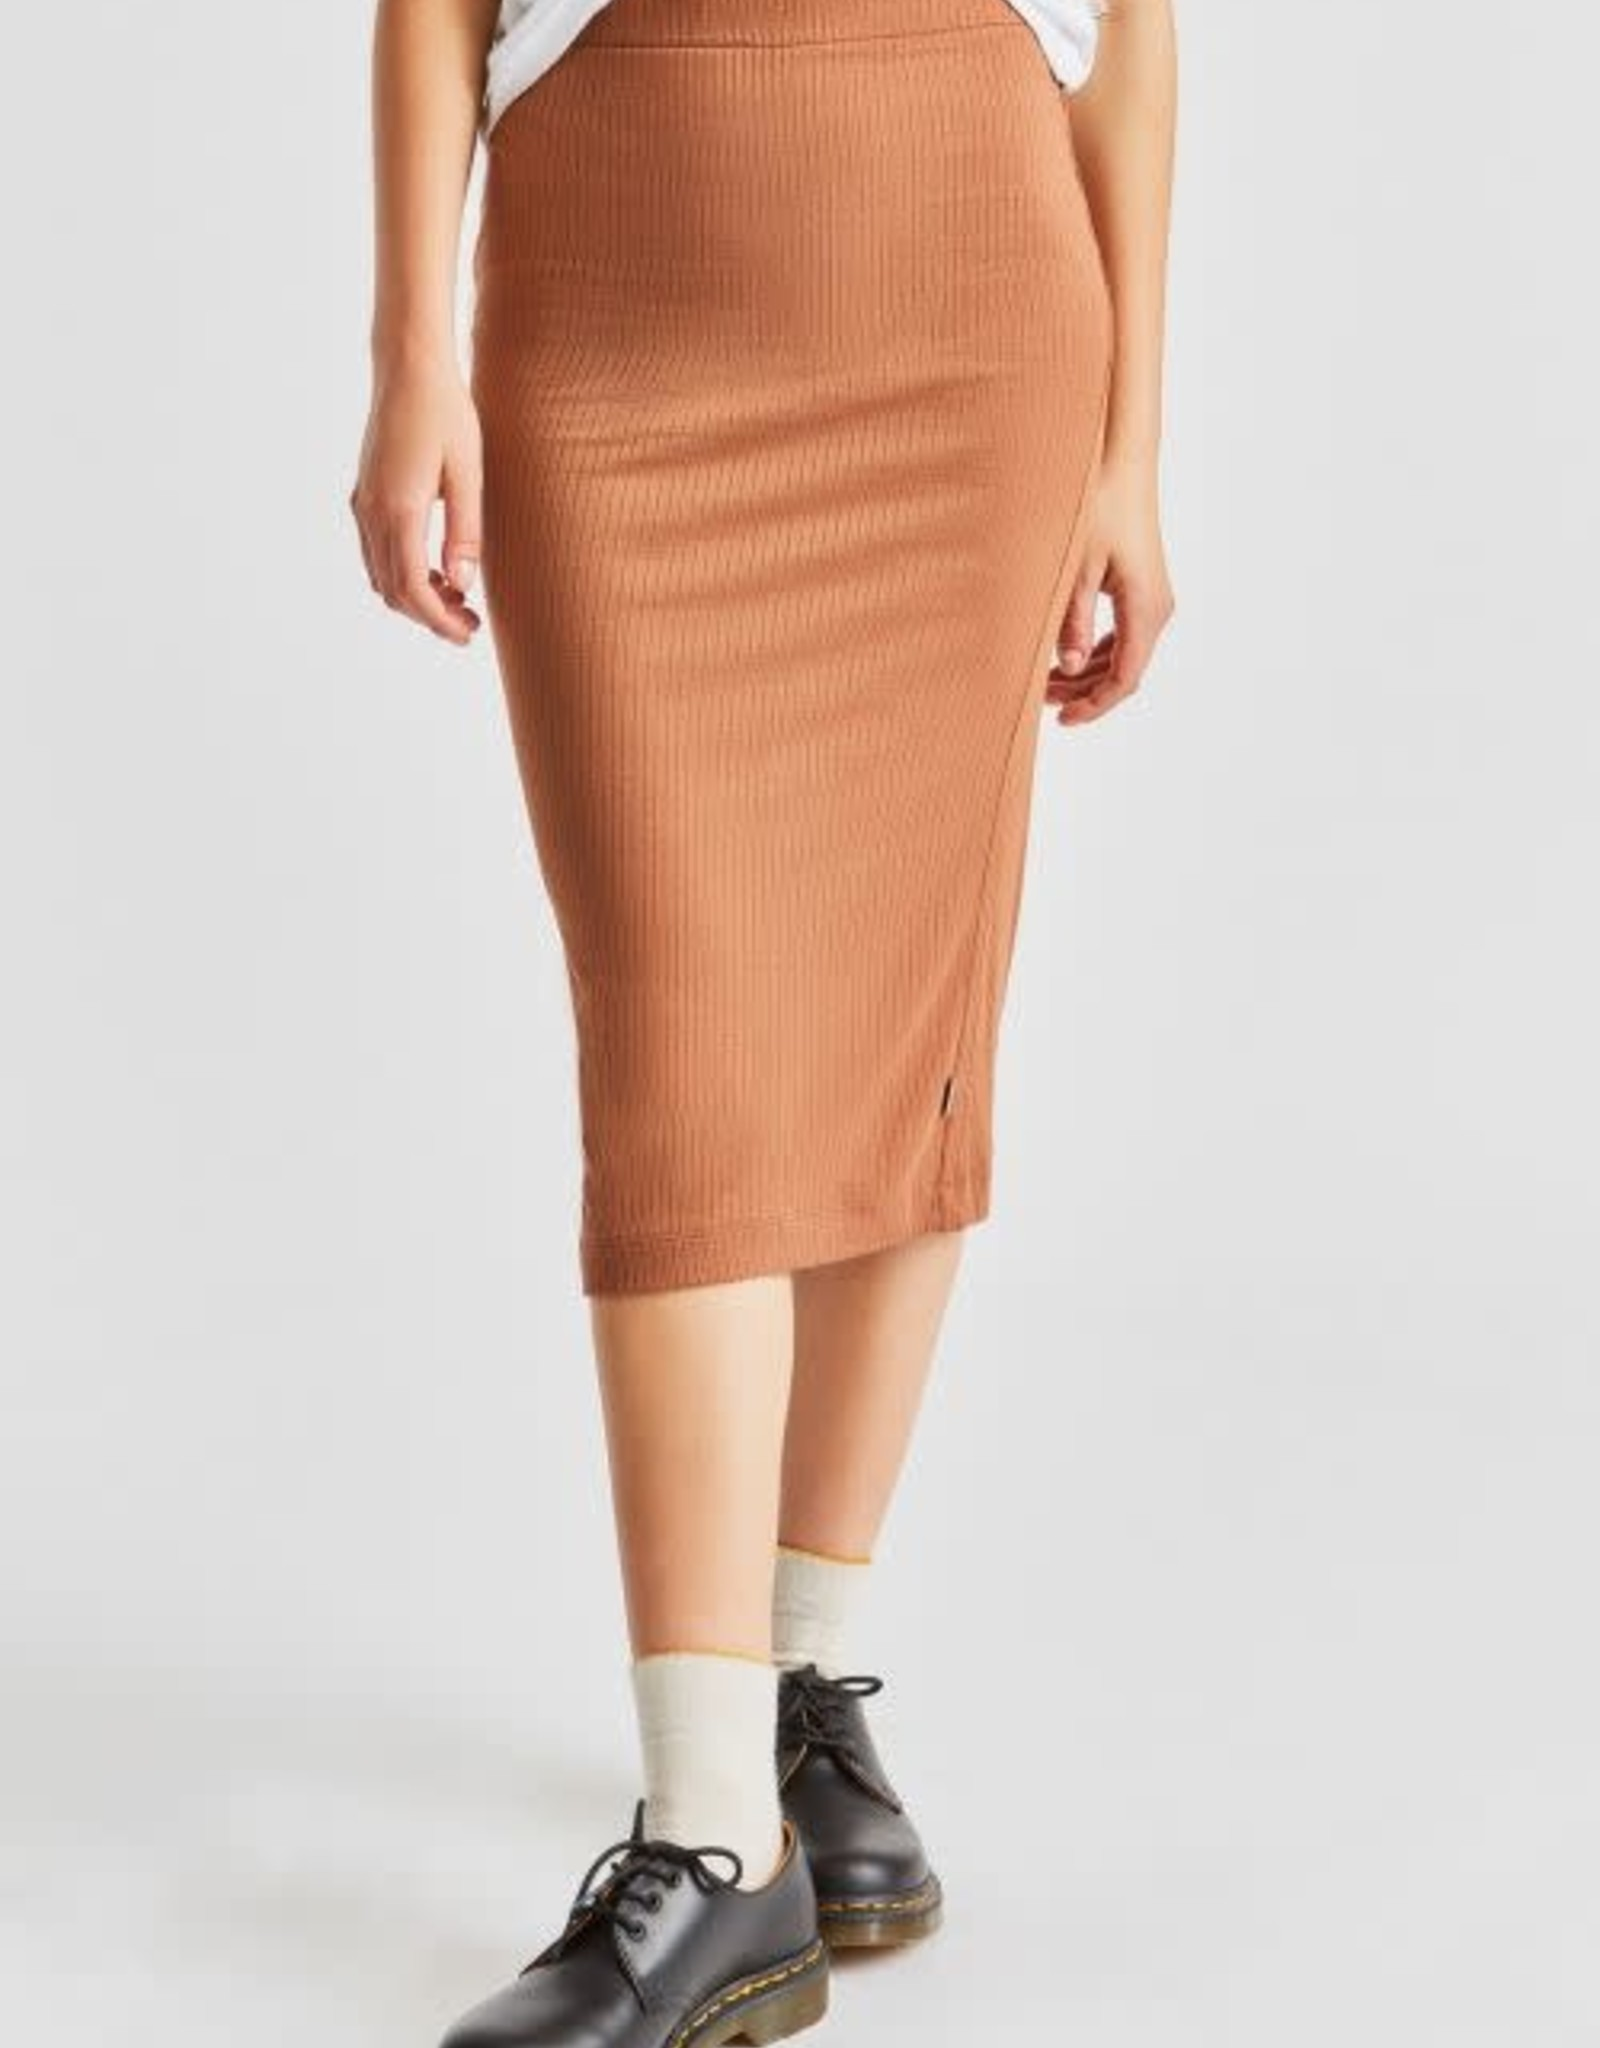 BRIXTON GIGI Pencil skirt, Also In BLACK